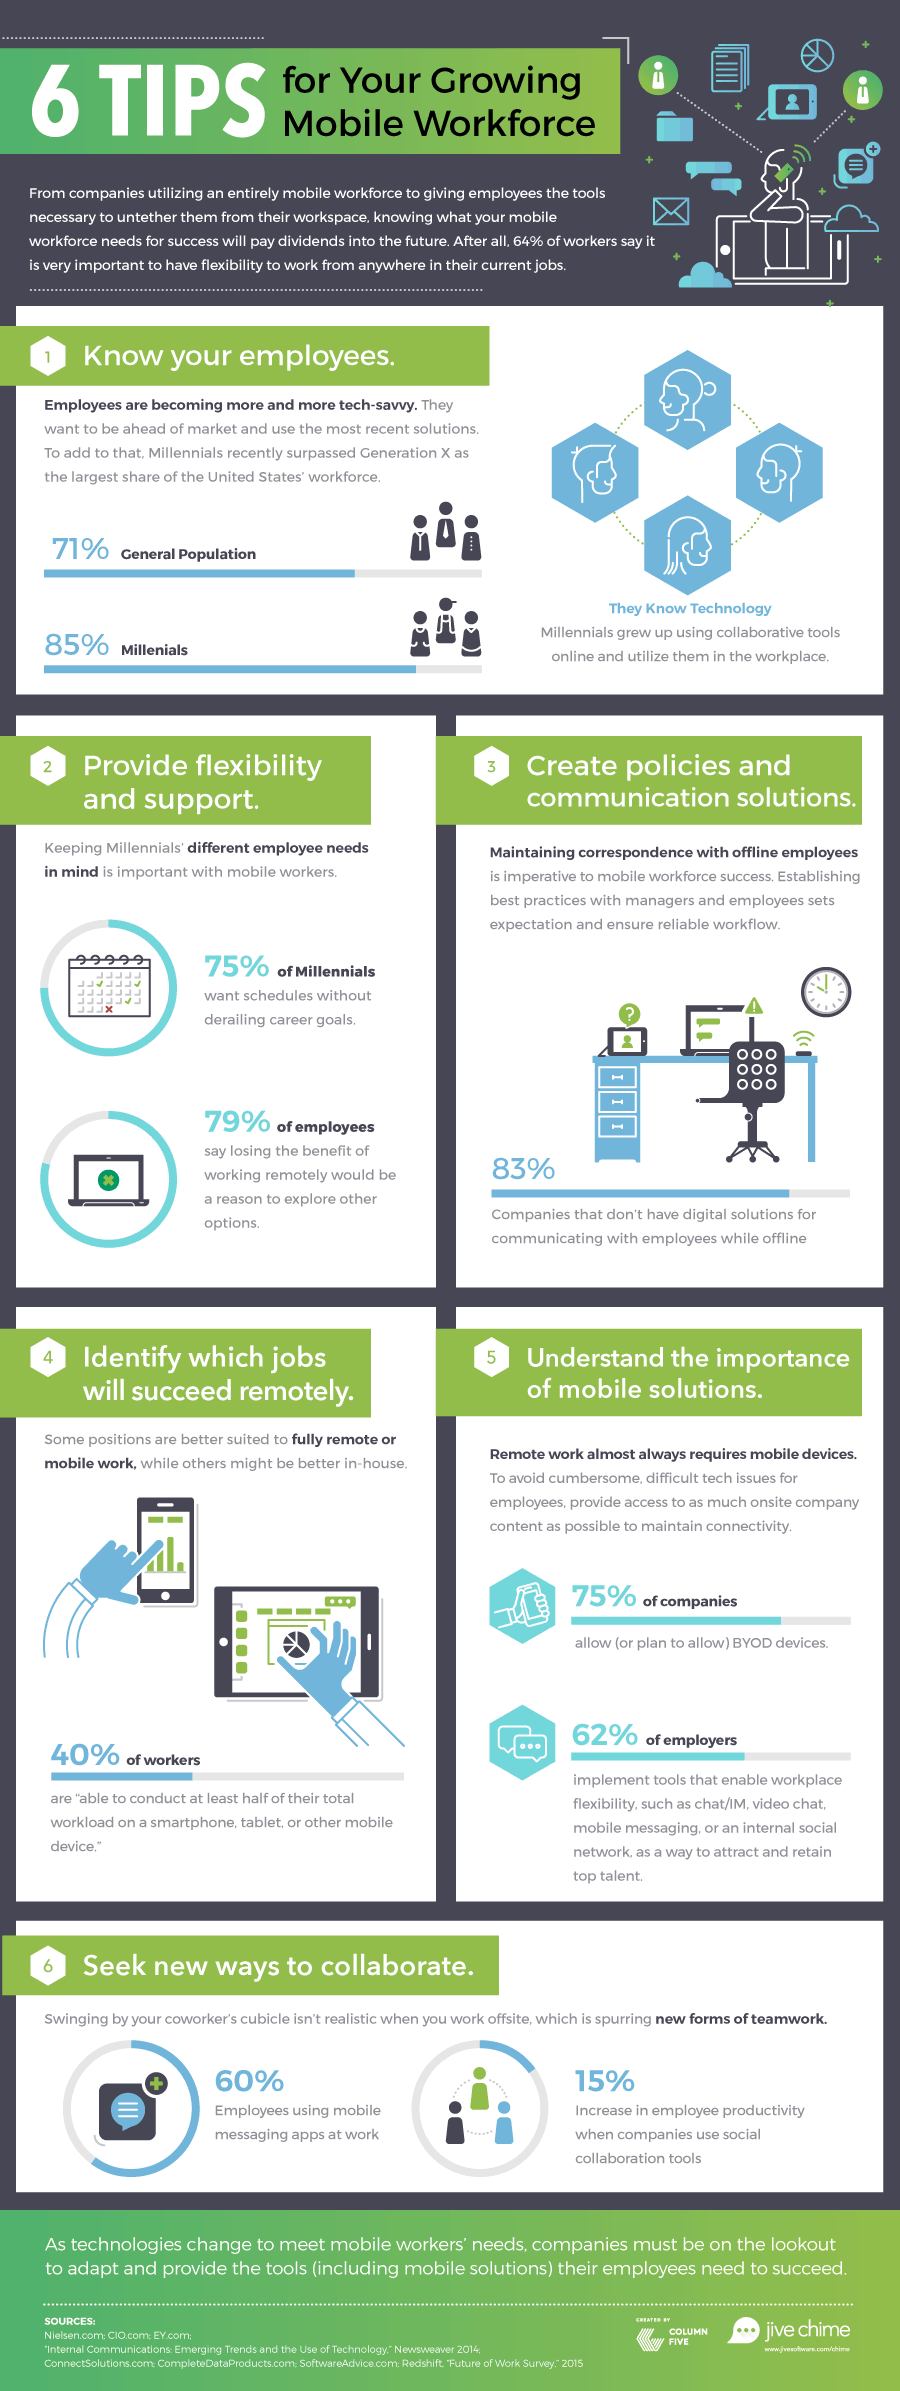 Jive-w_ChimeMobileWorkforce_infographic